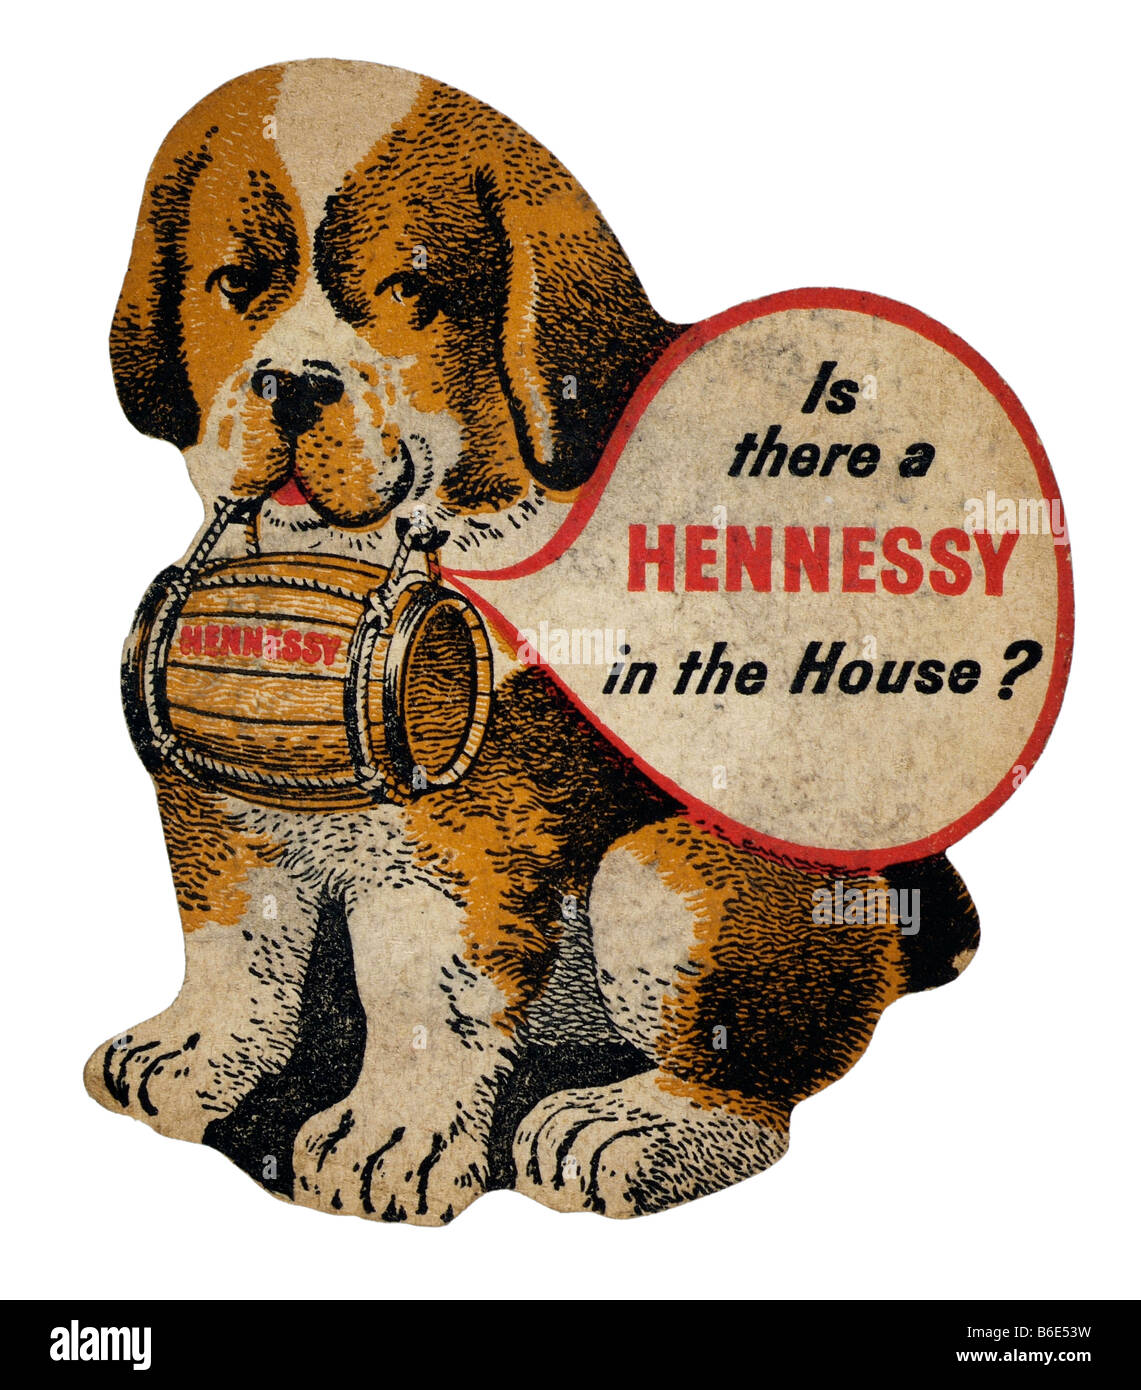 is there a hennessey in the house - Stock Image